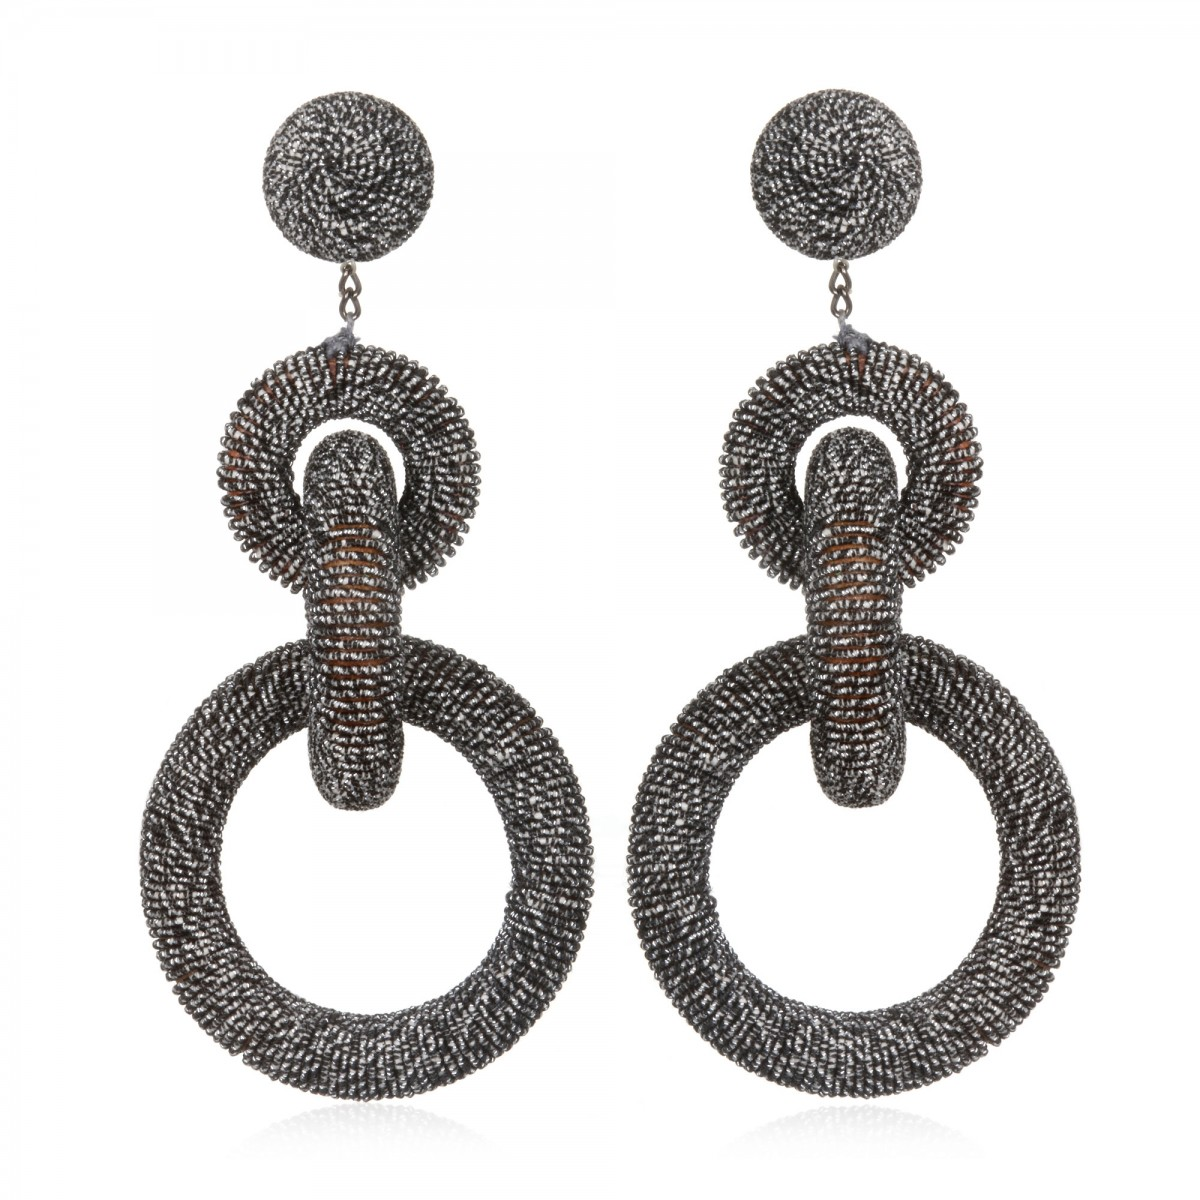 Gunmetal Metallic Hoops by SUZANNA DAI